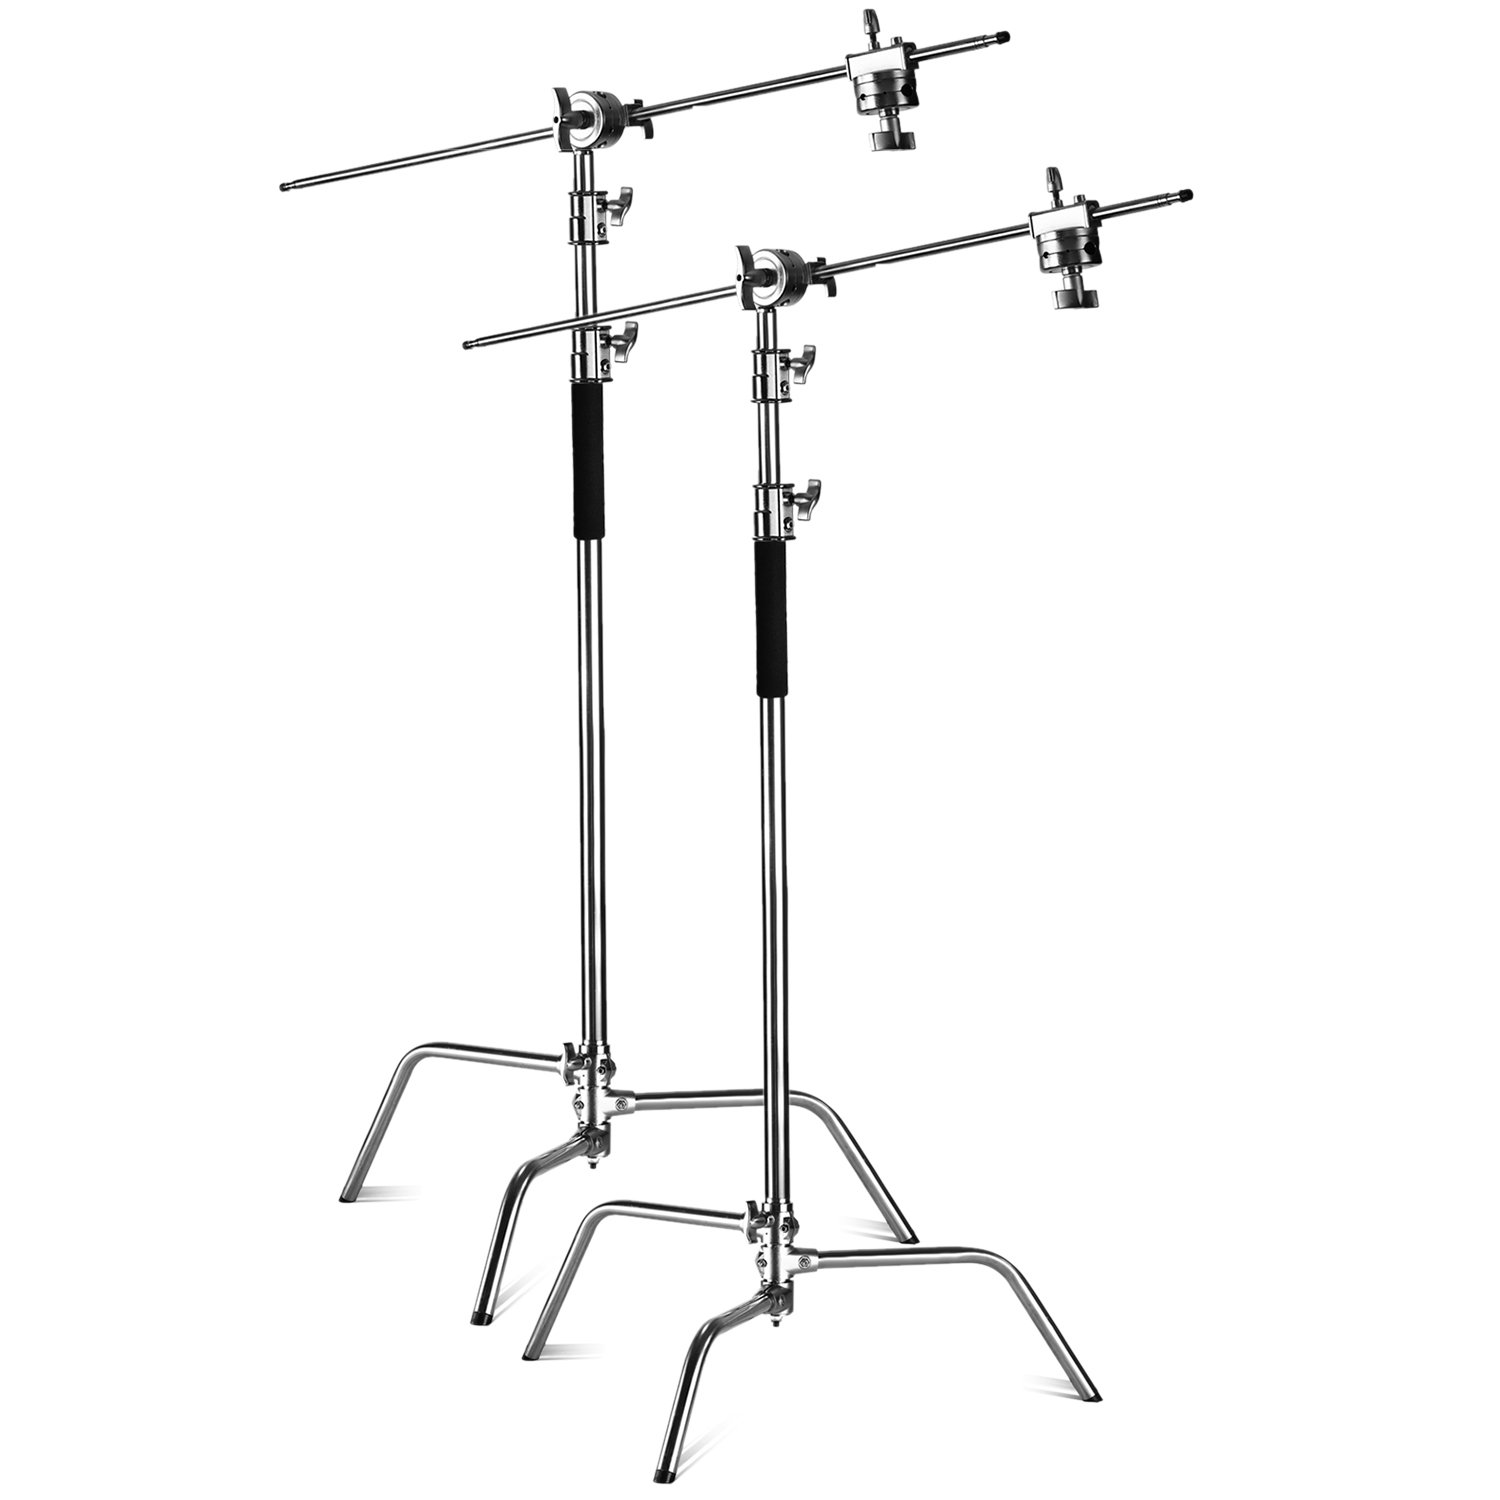 Neewer 2 Pieces Heavy Duty Max Height 10 feet/3 meters Adjustable Light Stand with 4 feet/1.2 meters Holding Arm and Grip Head Kit for Studio Video Reflector,Monolight and Other Photographic Equipment by Neewer